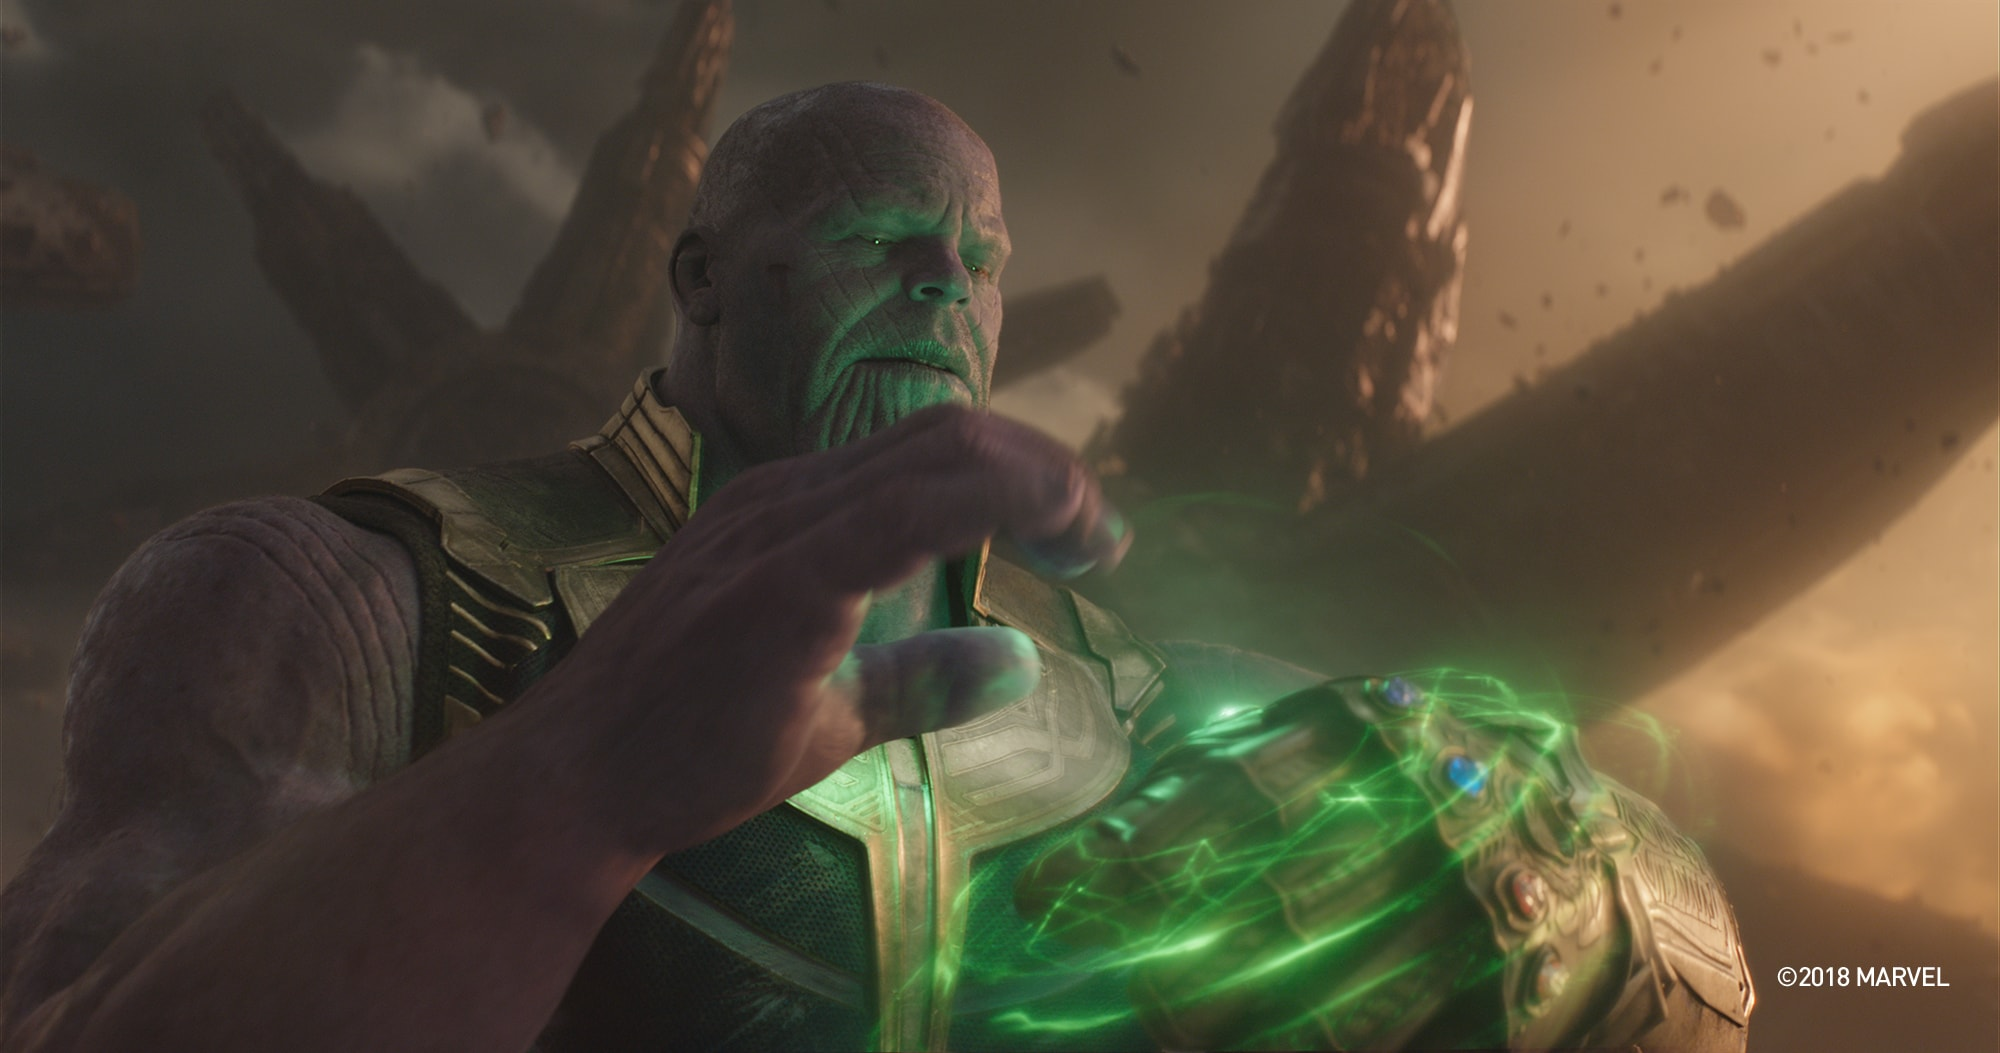 VFXShow232: Avengers: Infinity War (The Stones reform) – fxguide